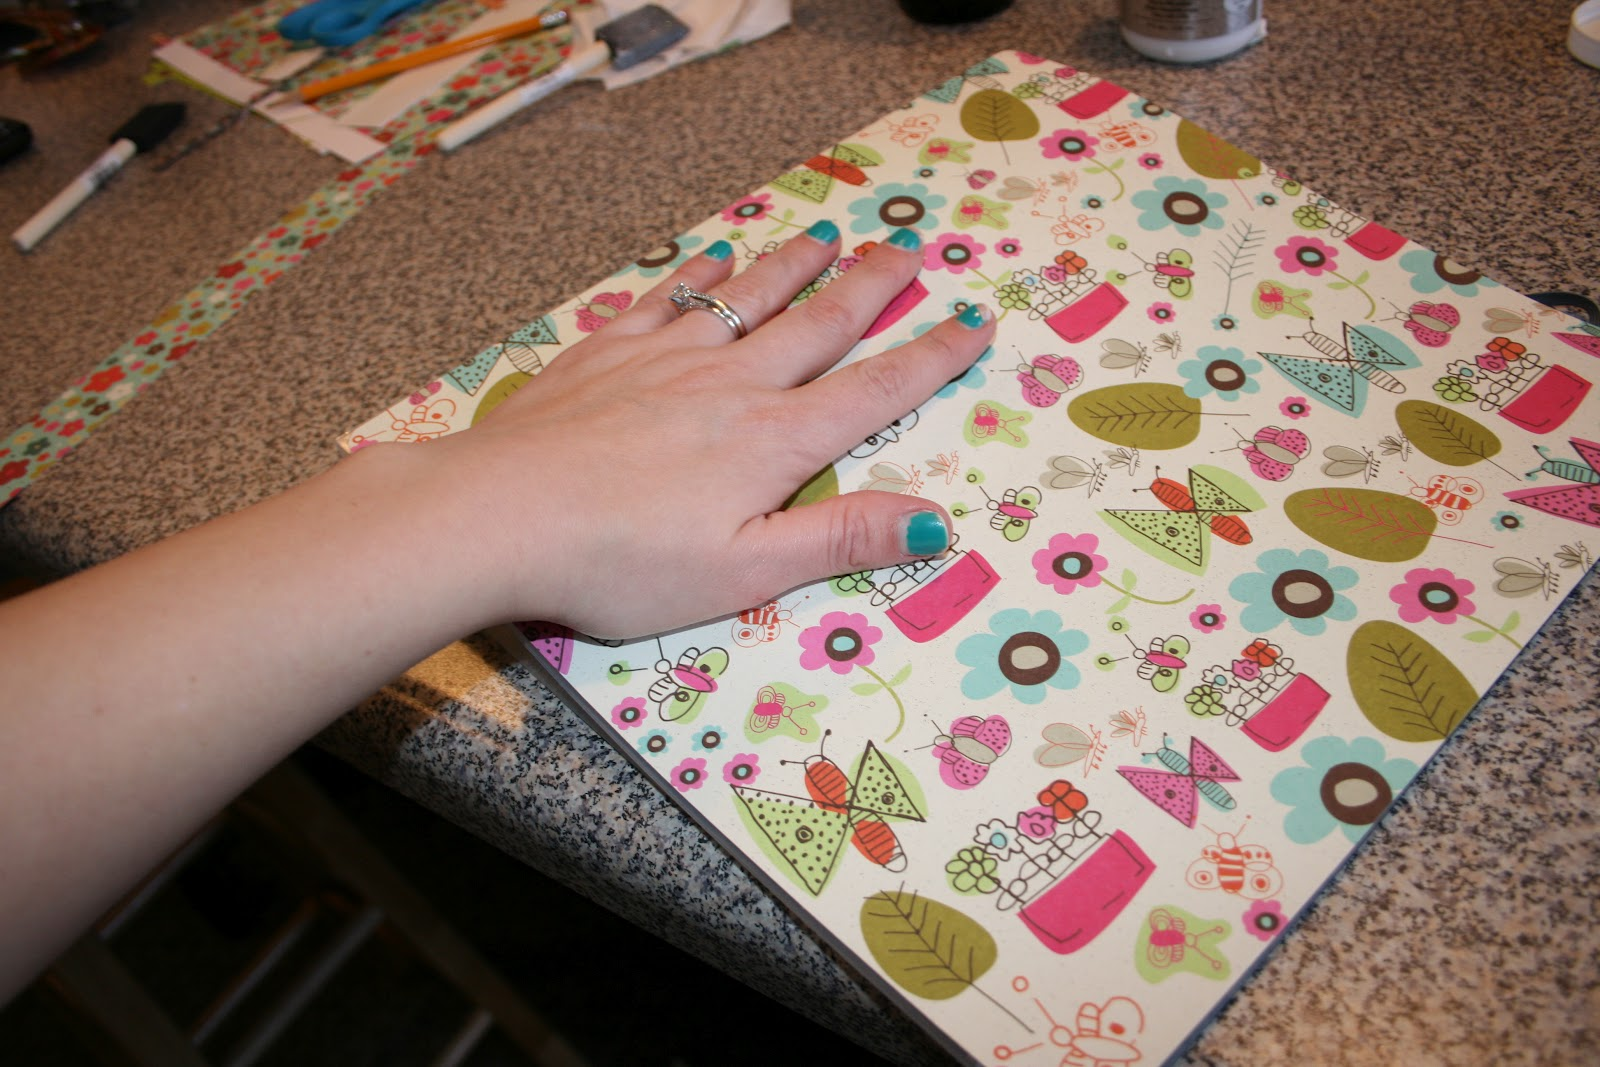 How to make scrapbook binder - Then Paint The Back Of The Scrapbook Paper With The Mod Podge And Stick It Down To The Binder Make Sure To Line It Up Well And Rub Out All The Bubbles